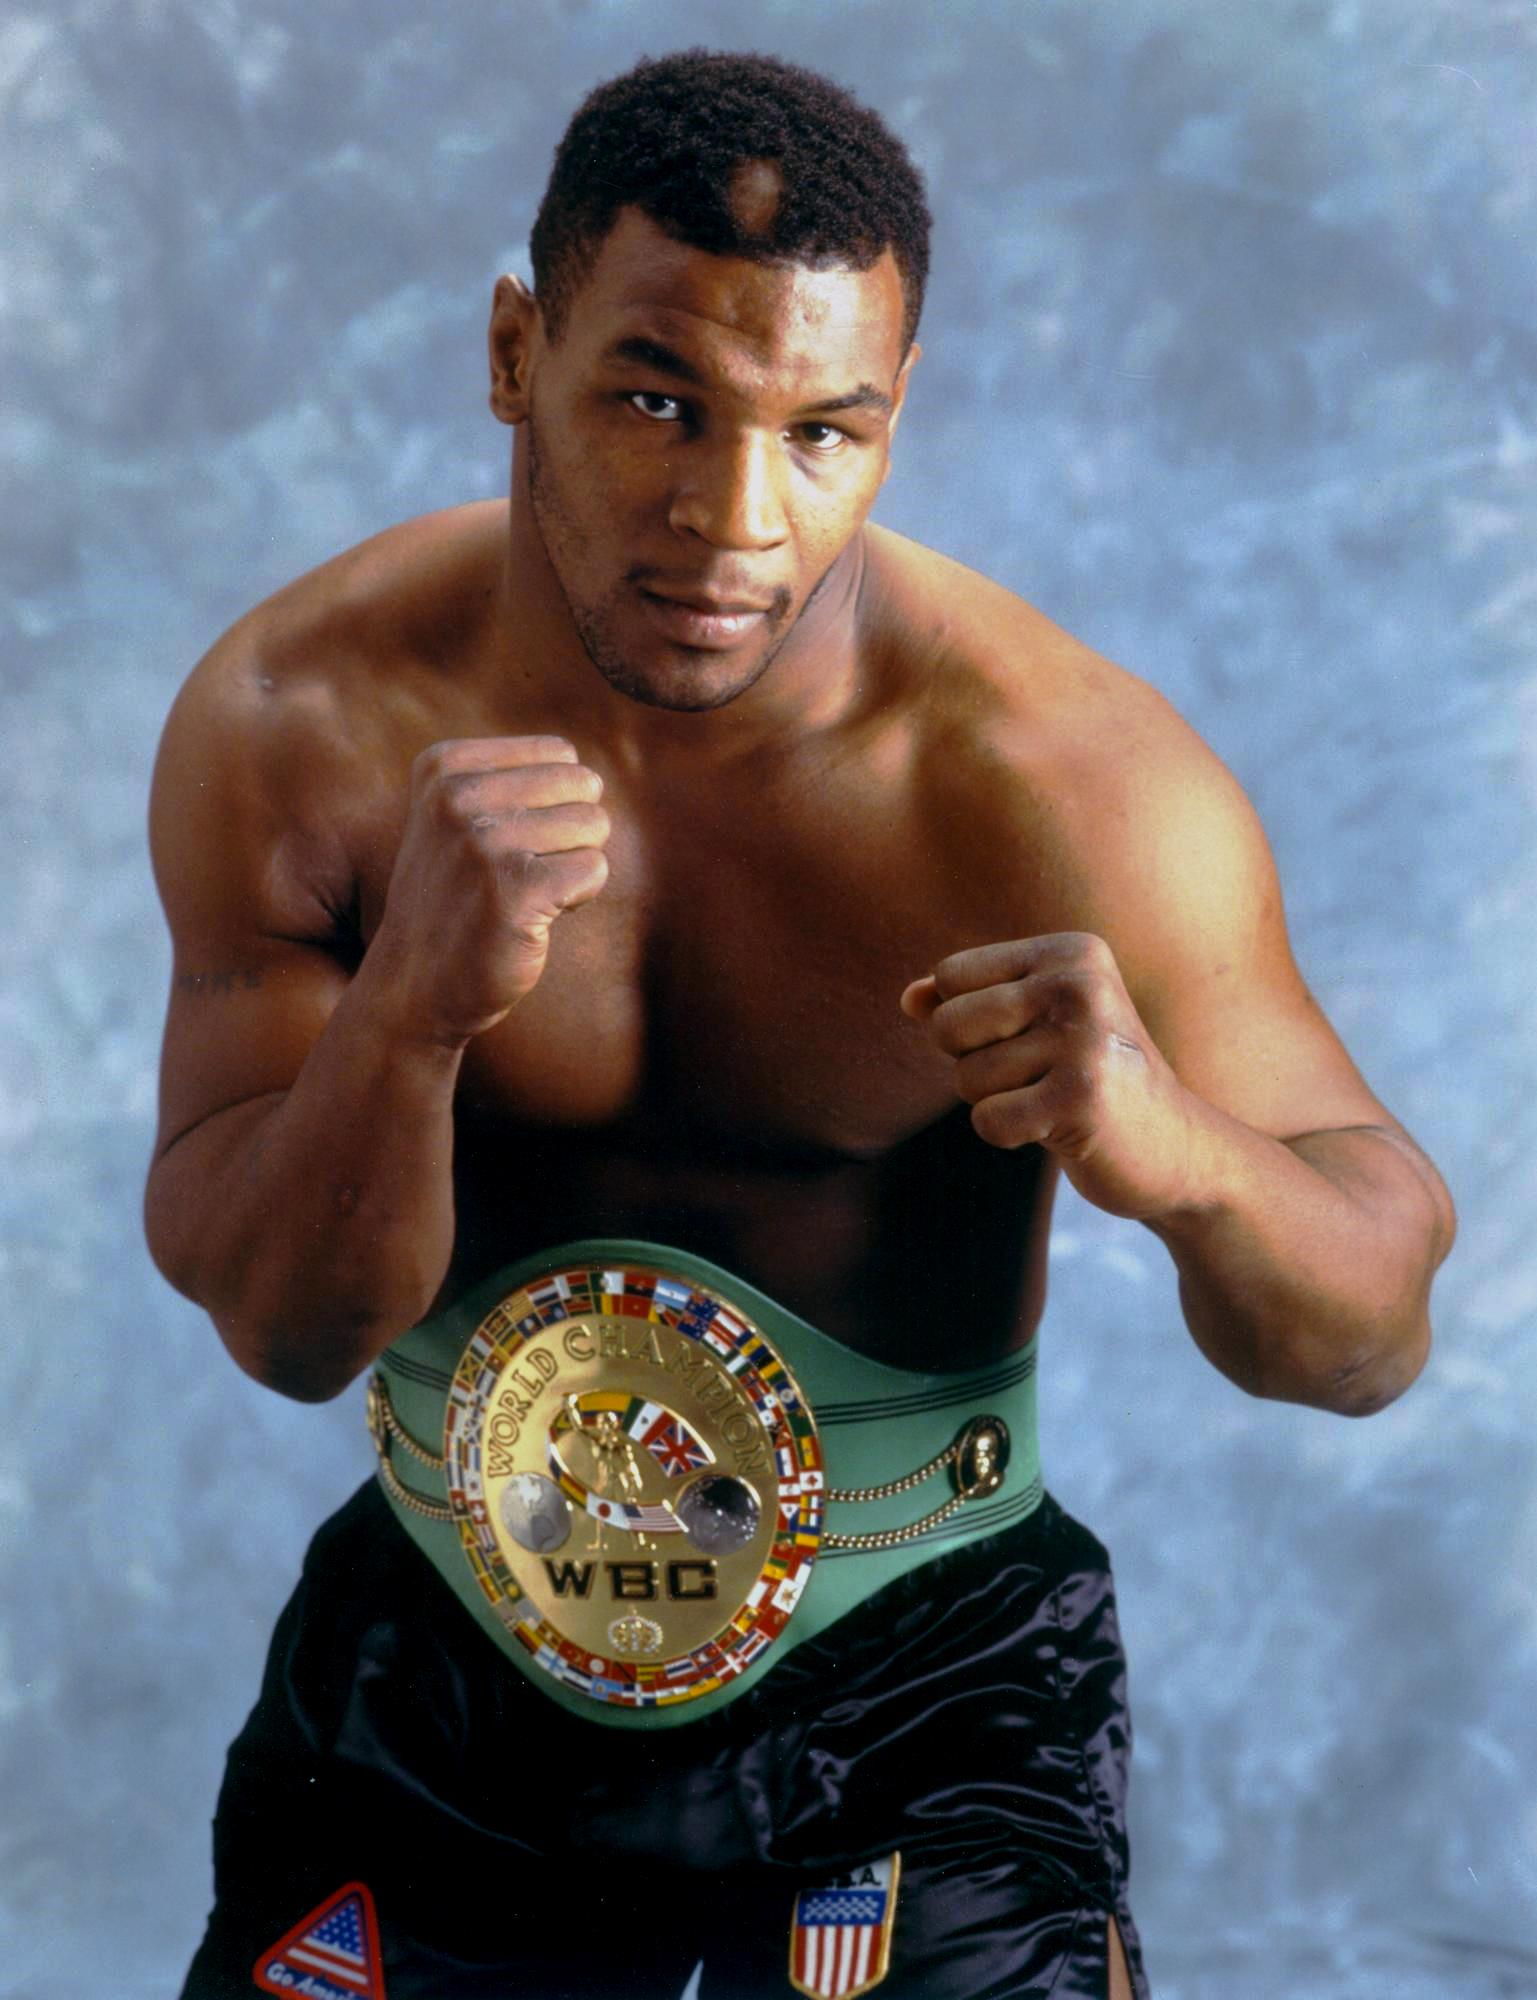 Happy birthday Mike Tyson(born 30.6.1966)